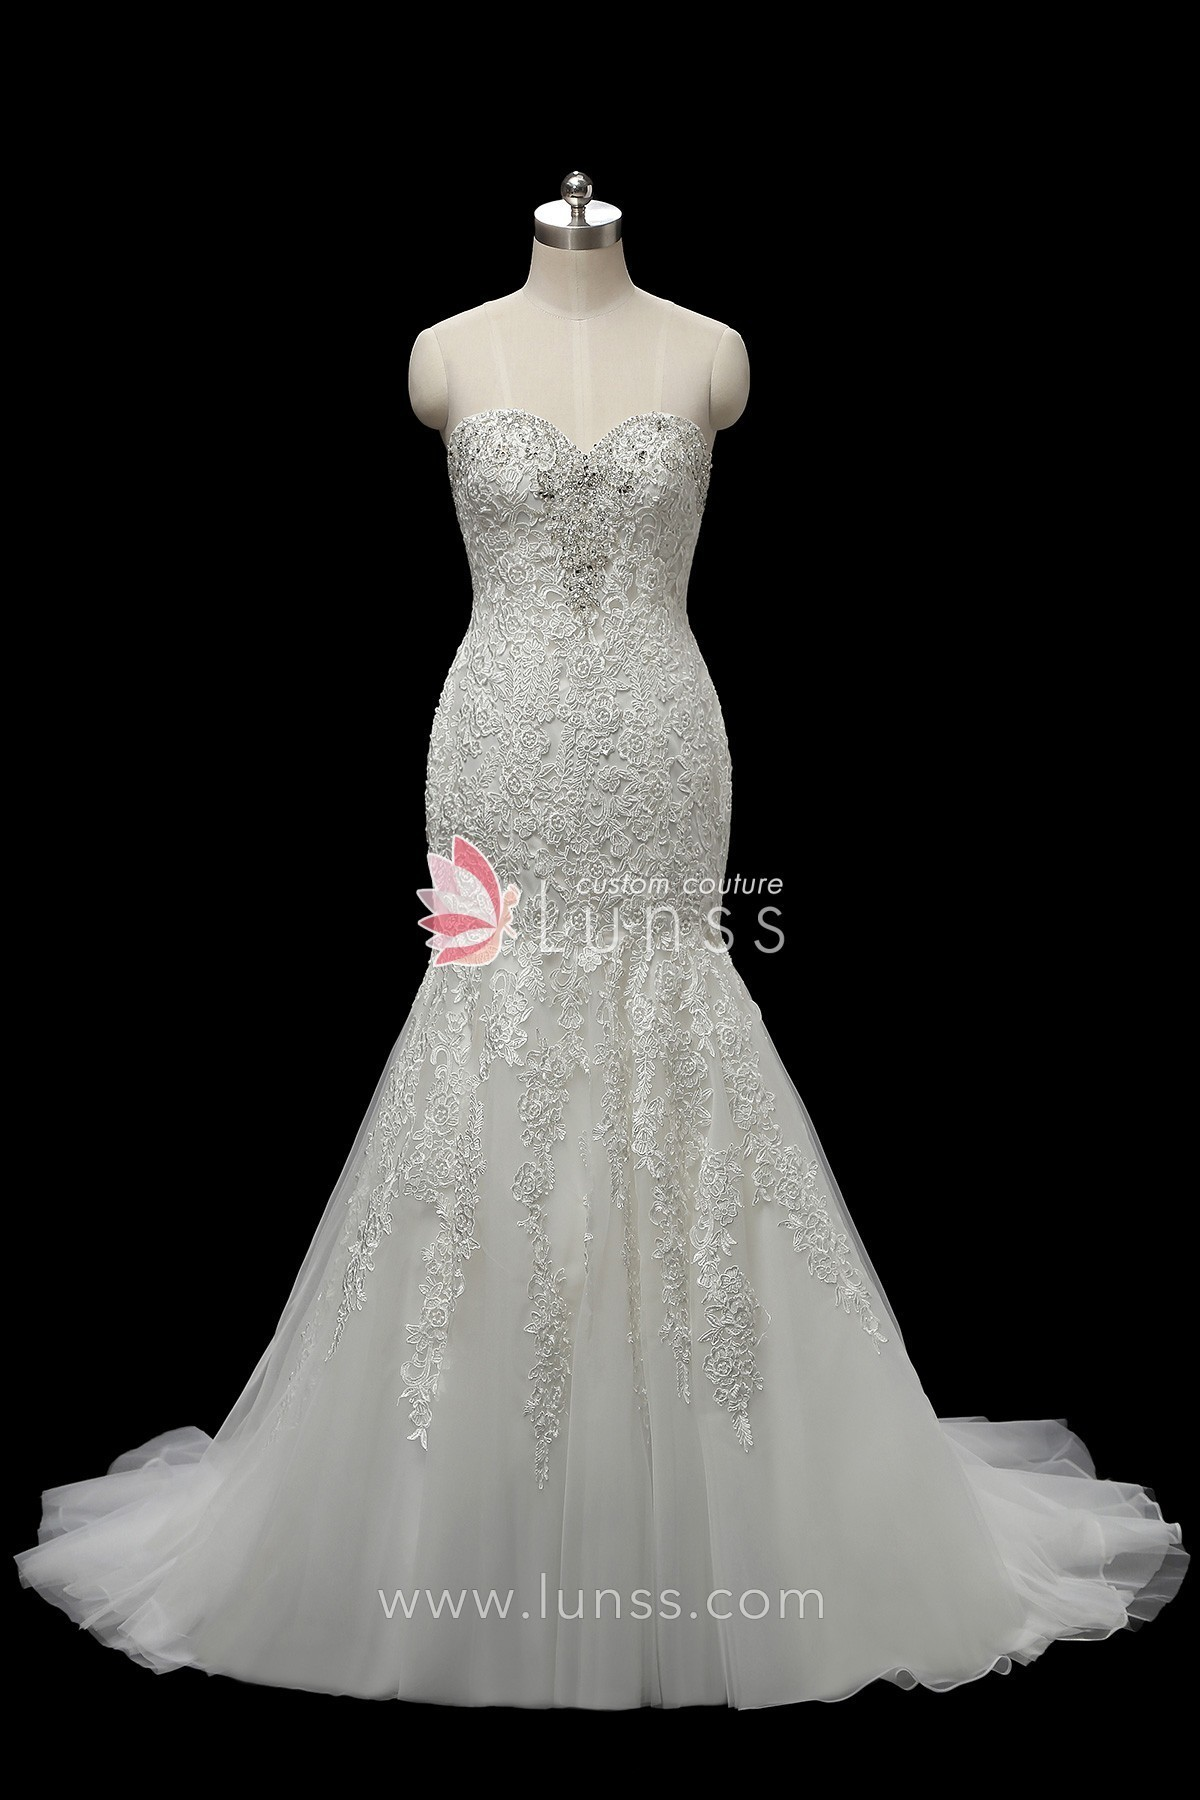 Unique Ivory Sparkling Beaded Lace Tulle Sweetheart Strapless Trumpet Wedding  Dress - Lunss Couture 477164e9e